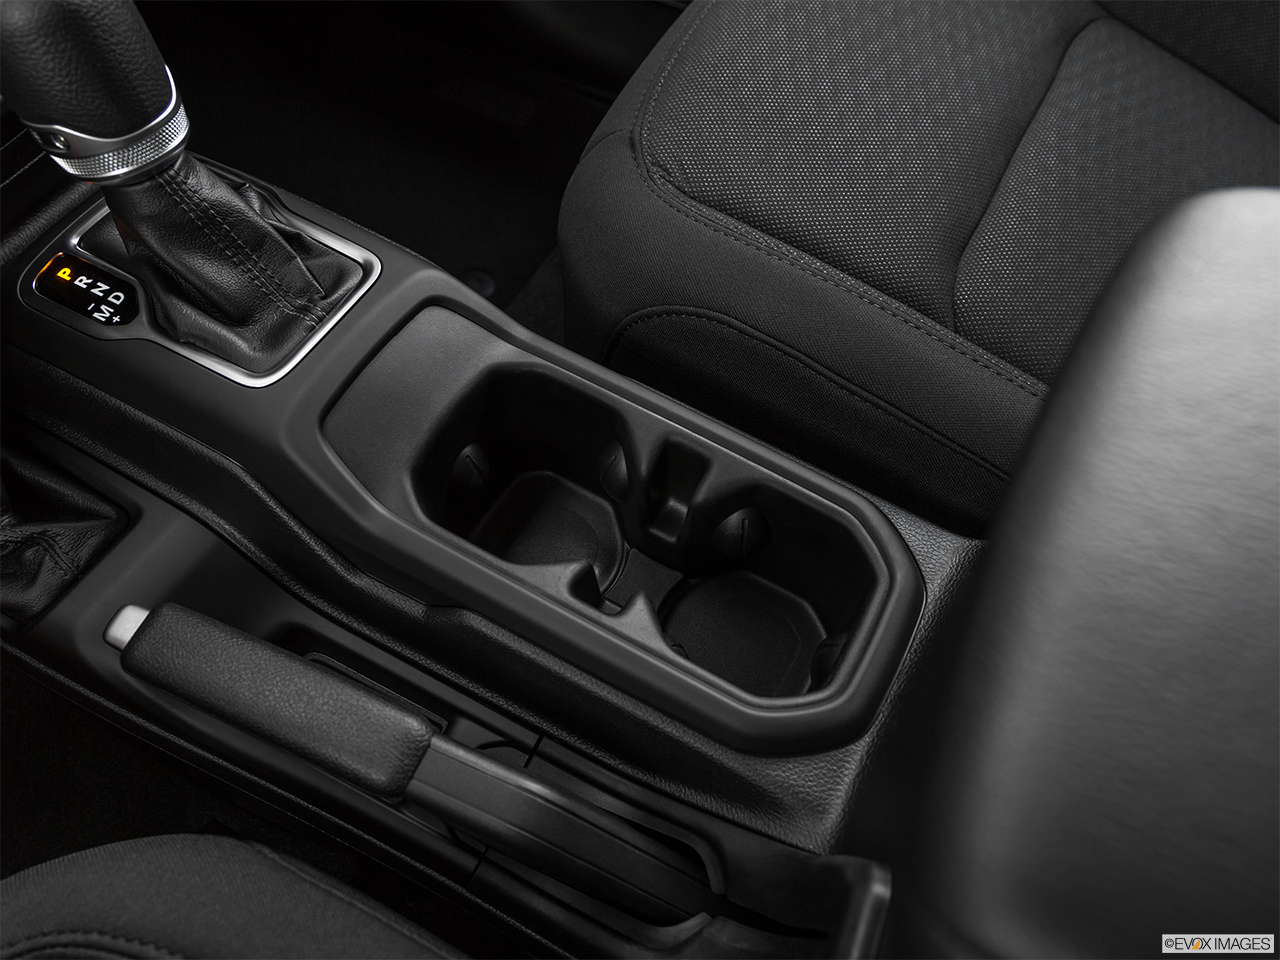 2020 Jeep Gladiator Sport S Cup holders.